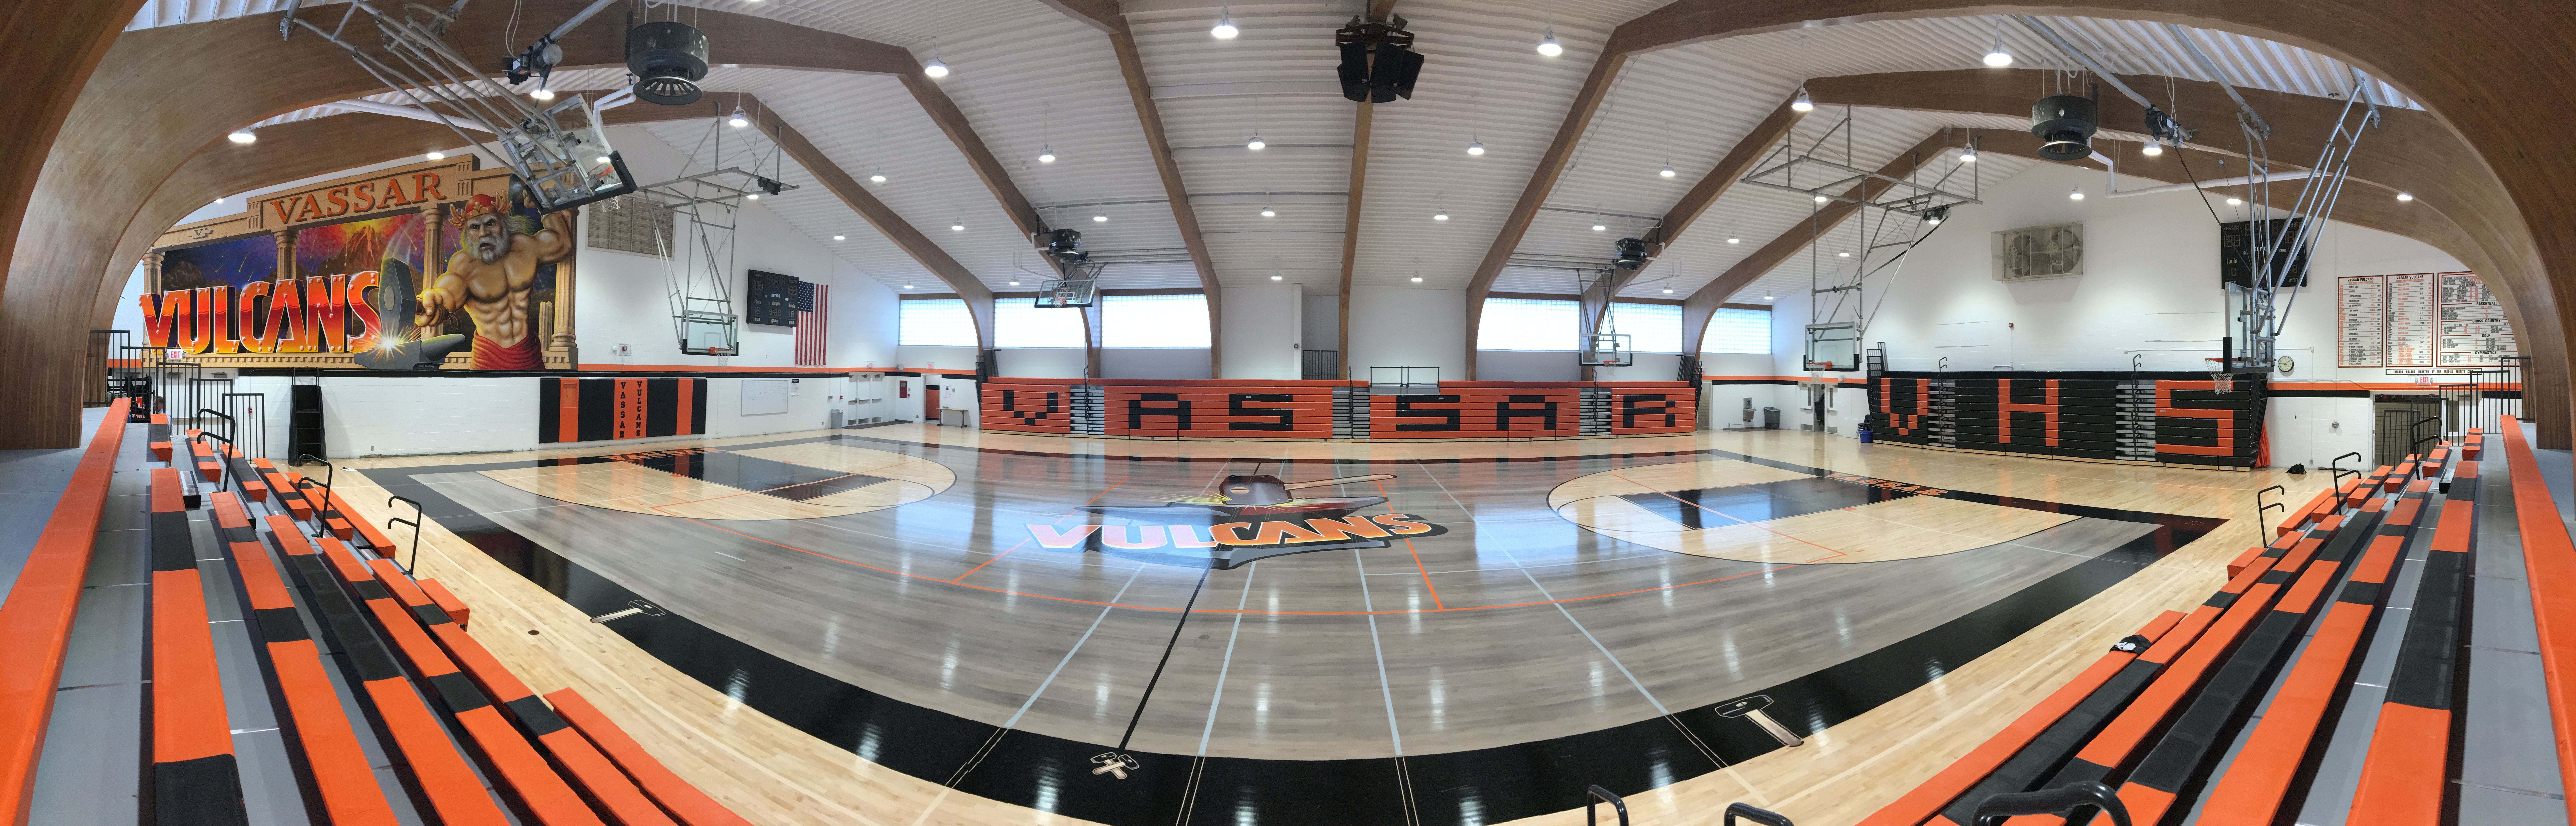 Vassar High School Gym